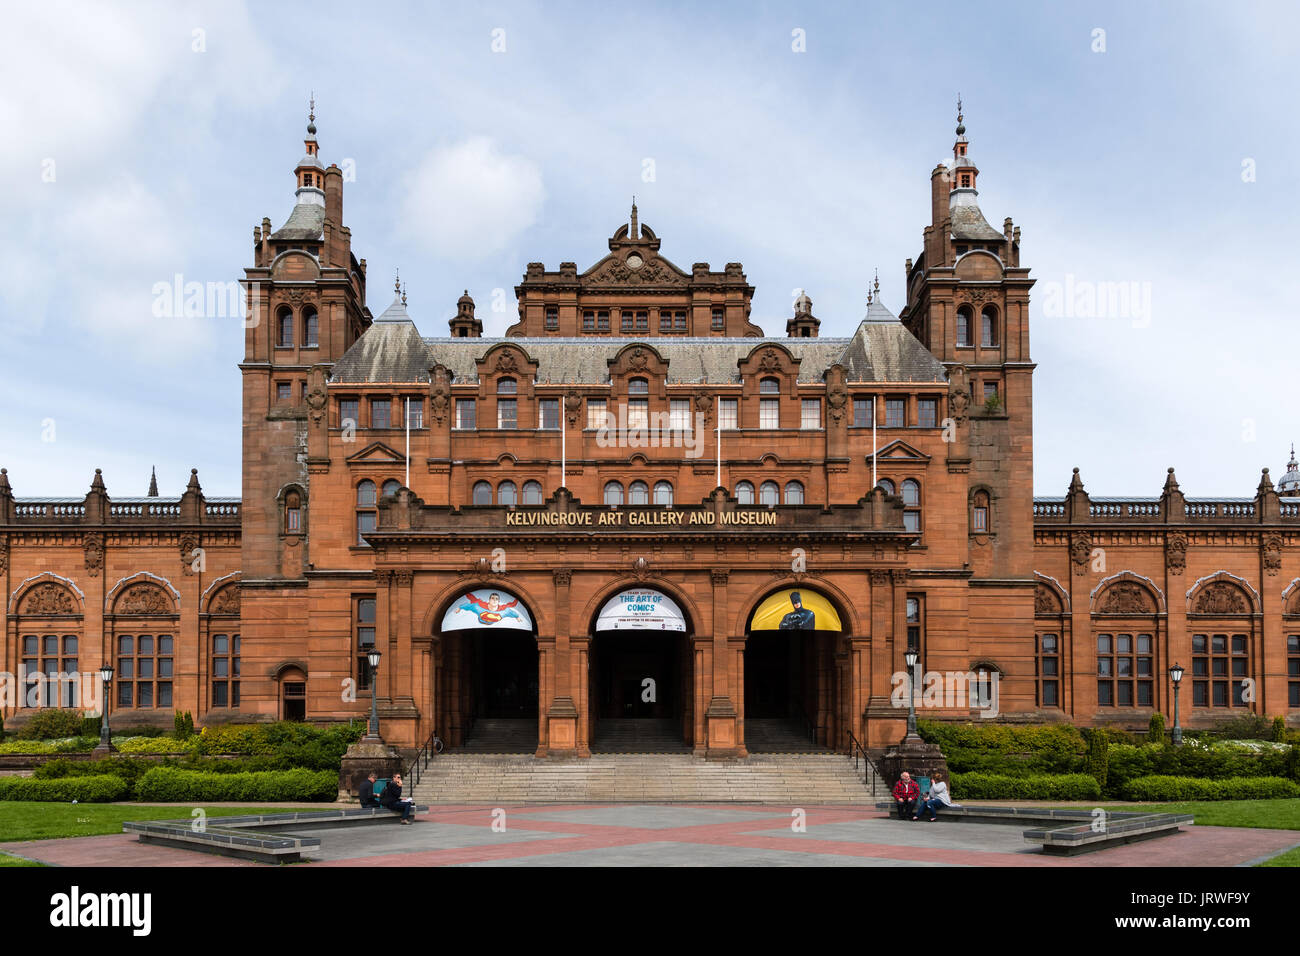 Kelvingrove Art Gallery and Museum Glasgow - Stock Image